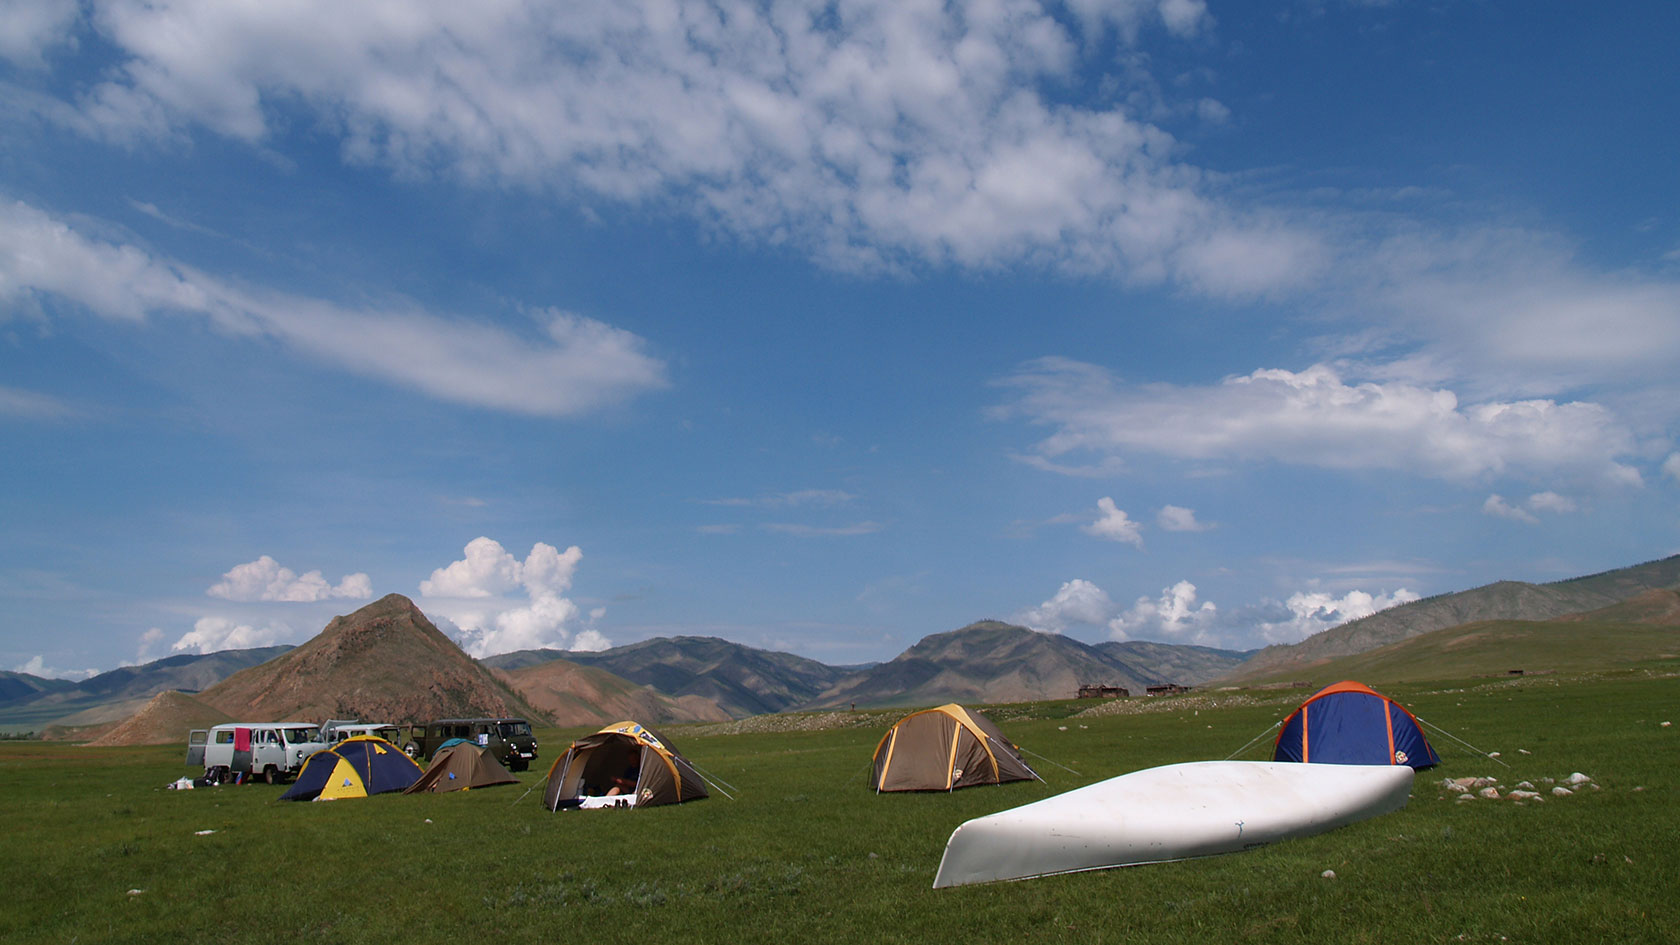 EXPERIENCE THE WIDE OPEN SPACES OF MONGOLIA